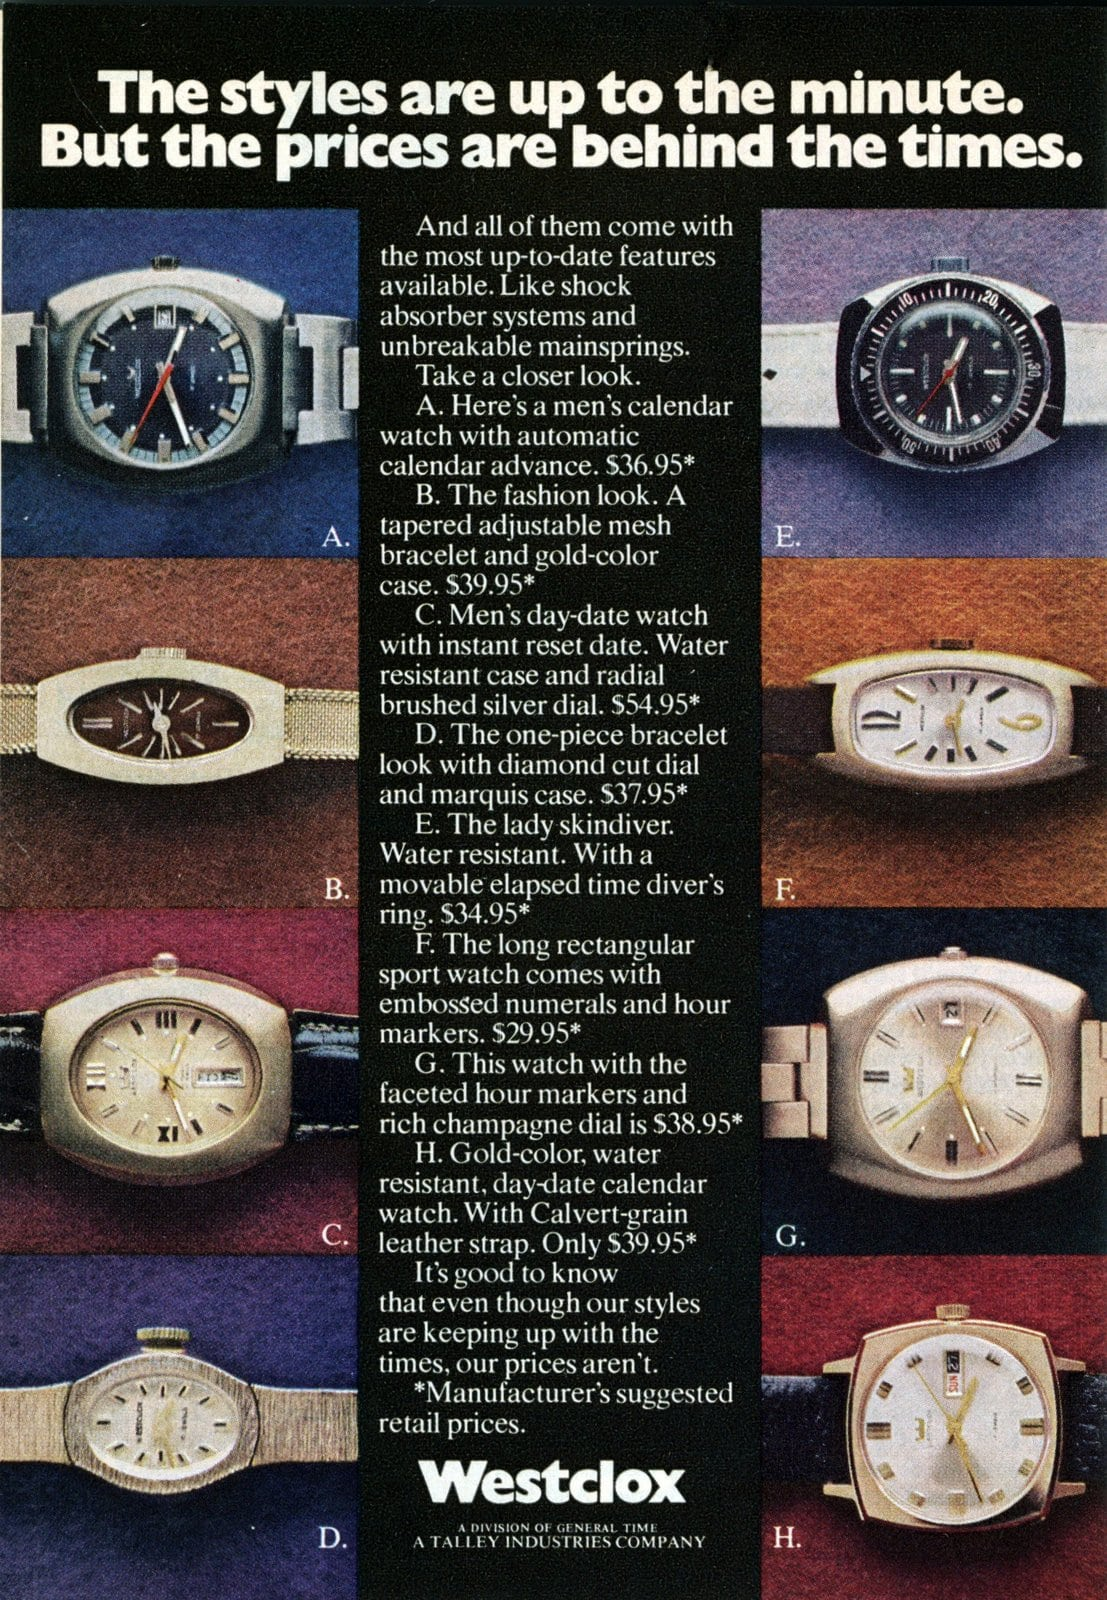 Westclox watches for men and women (1973)